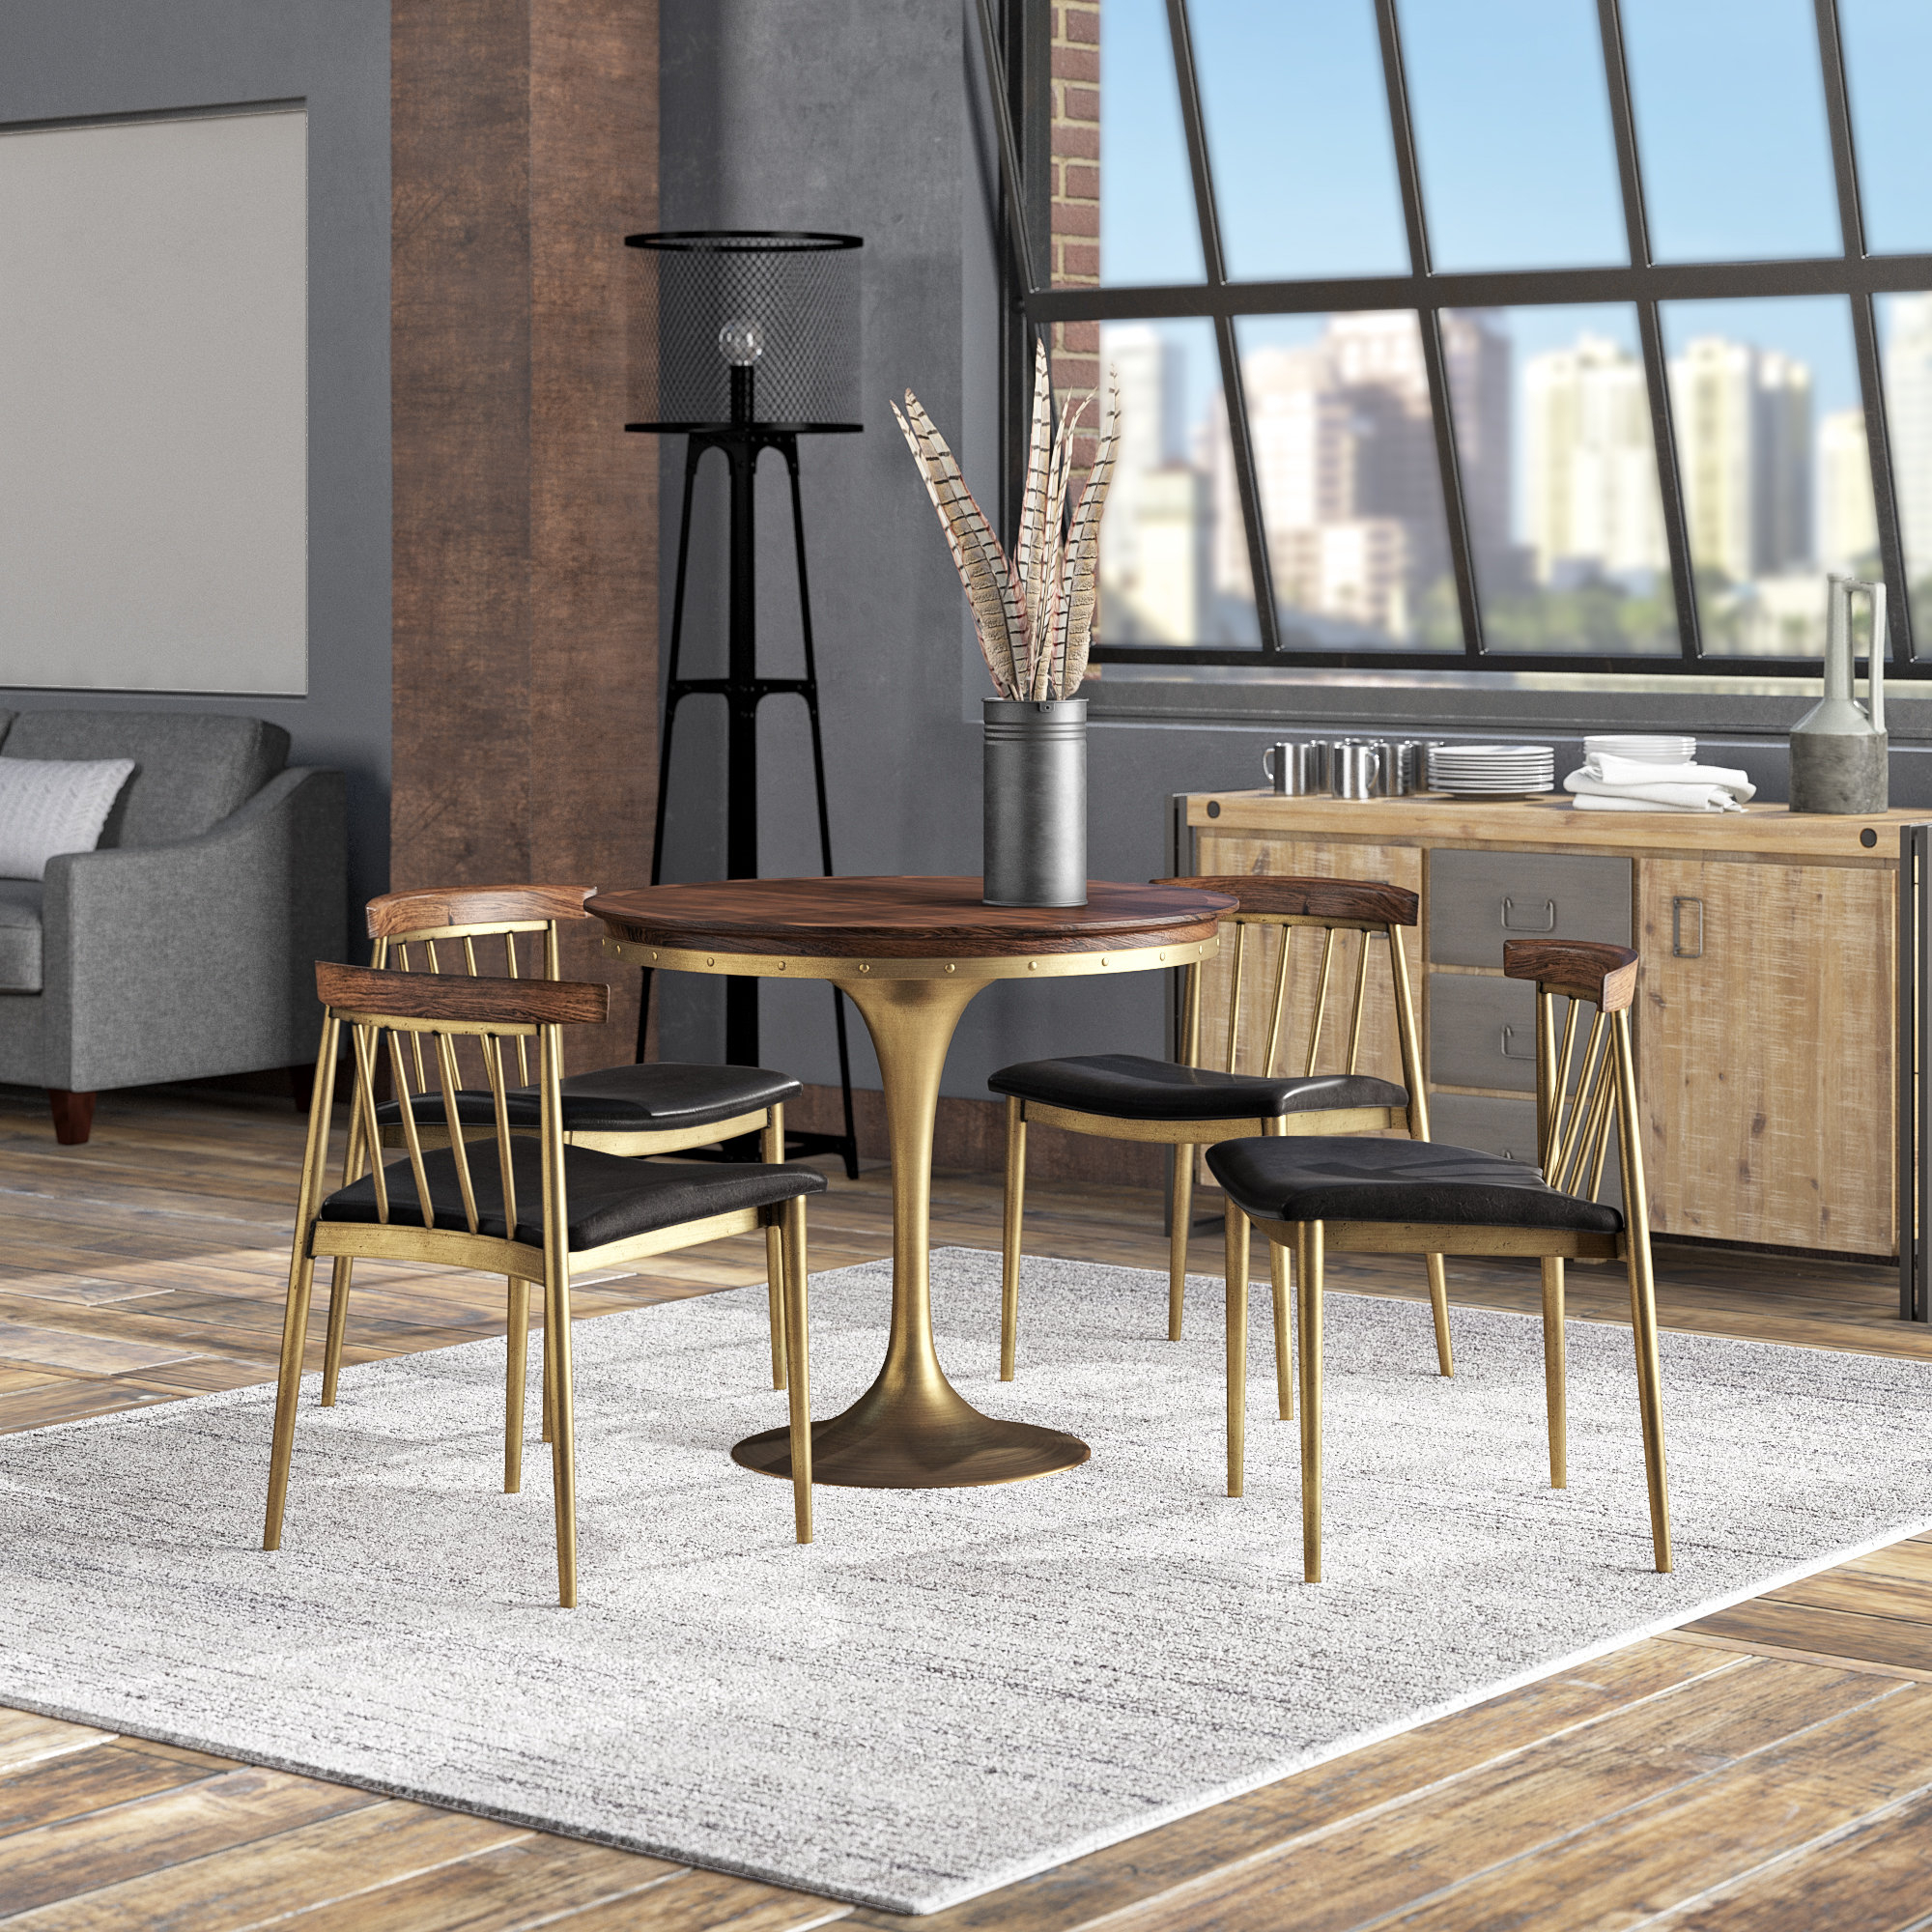 Loma Prieta 5 Piece Dining Set (View 11 of 25)